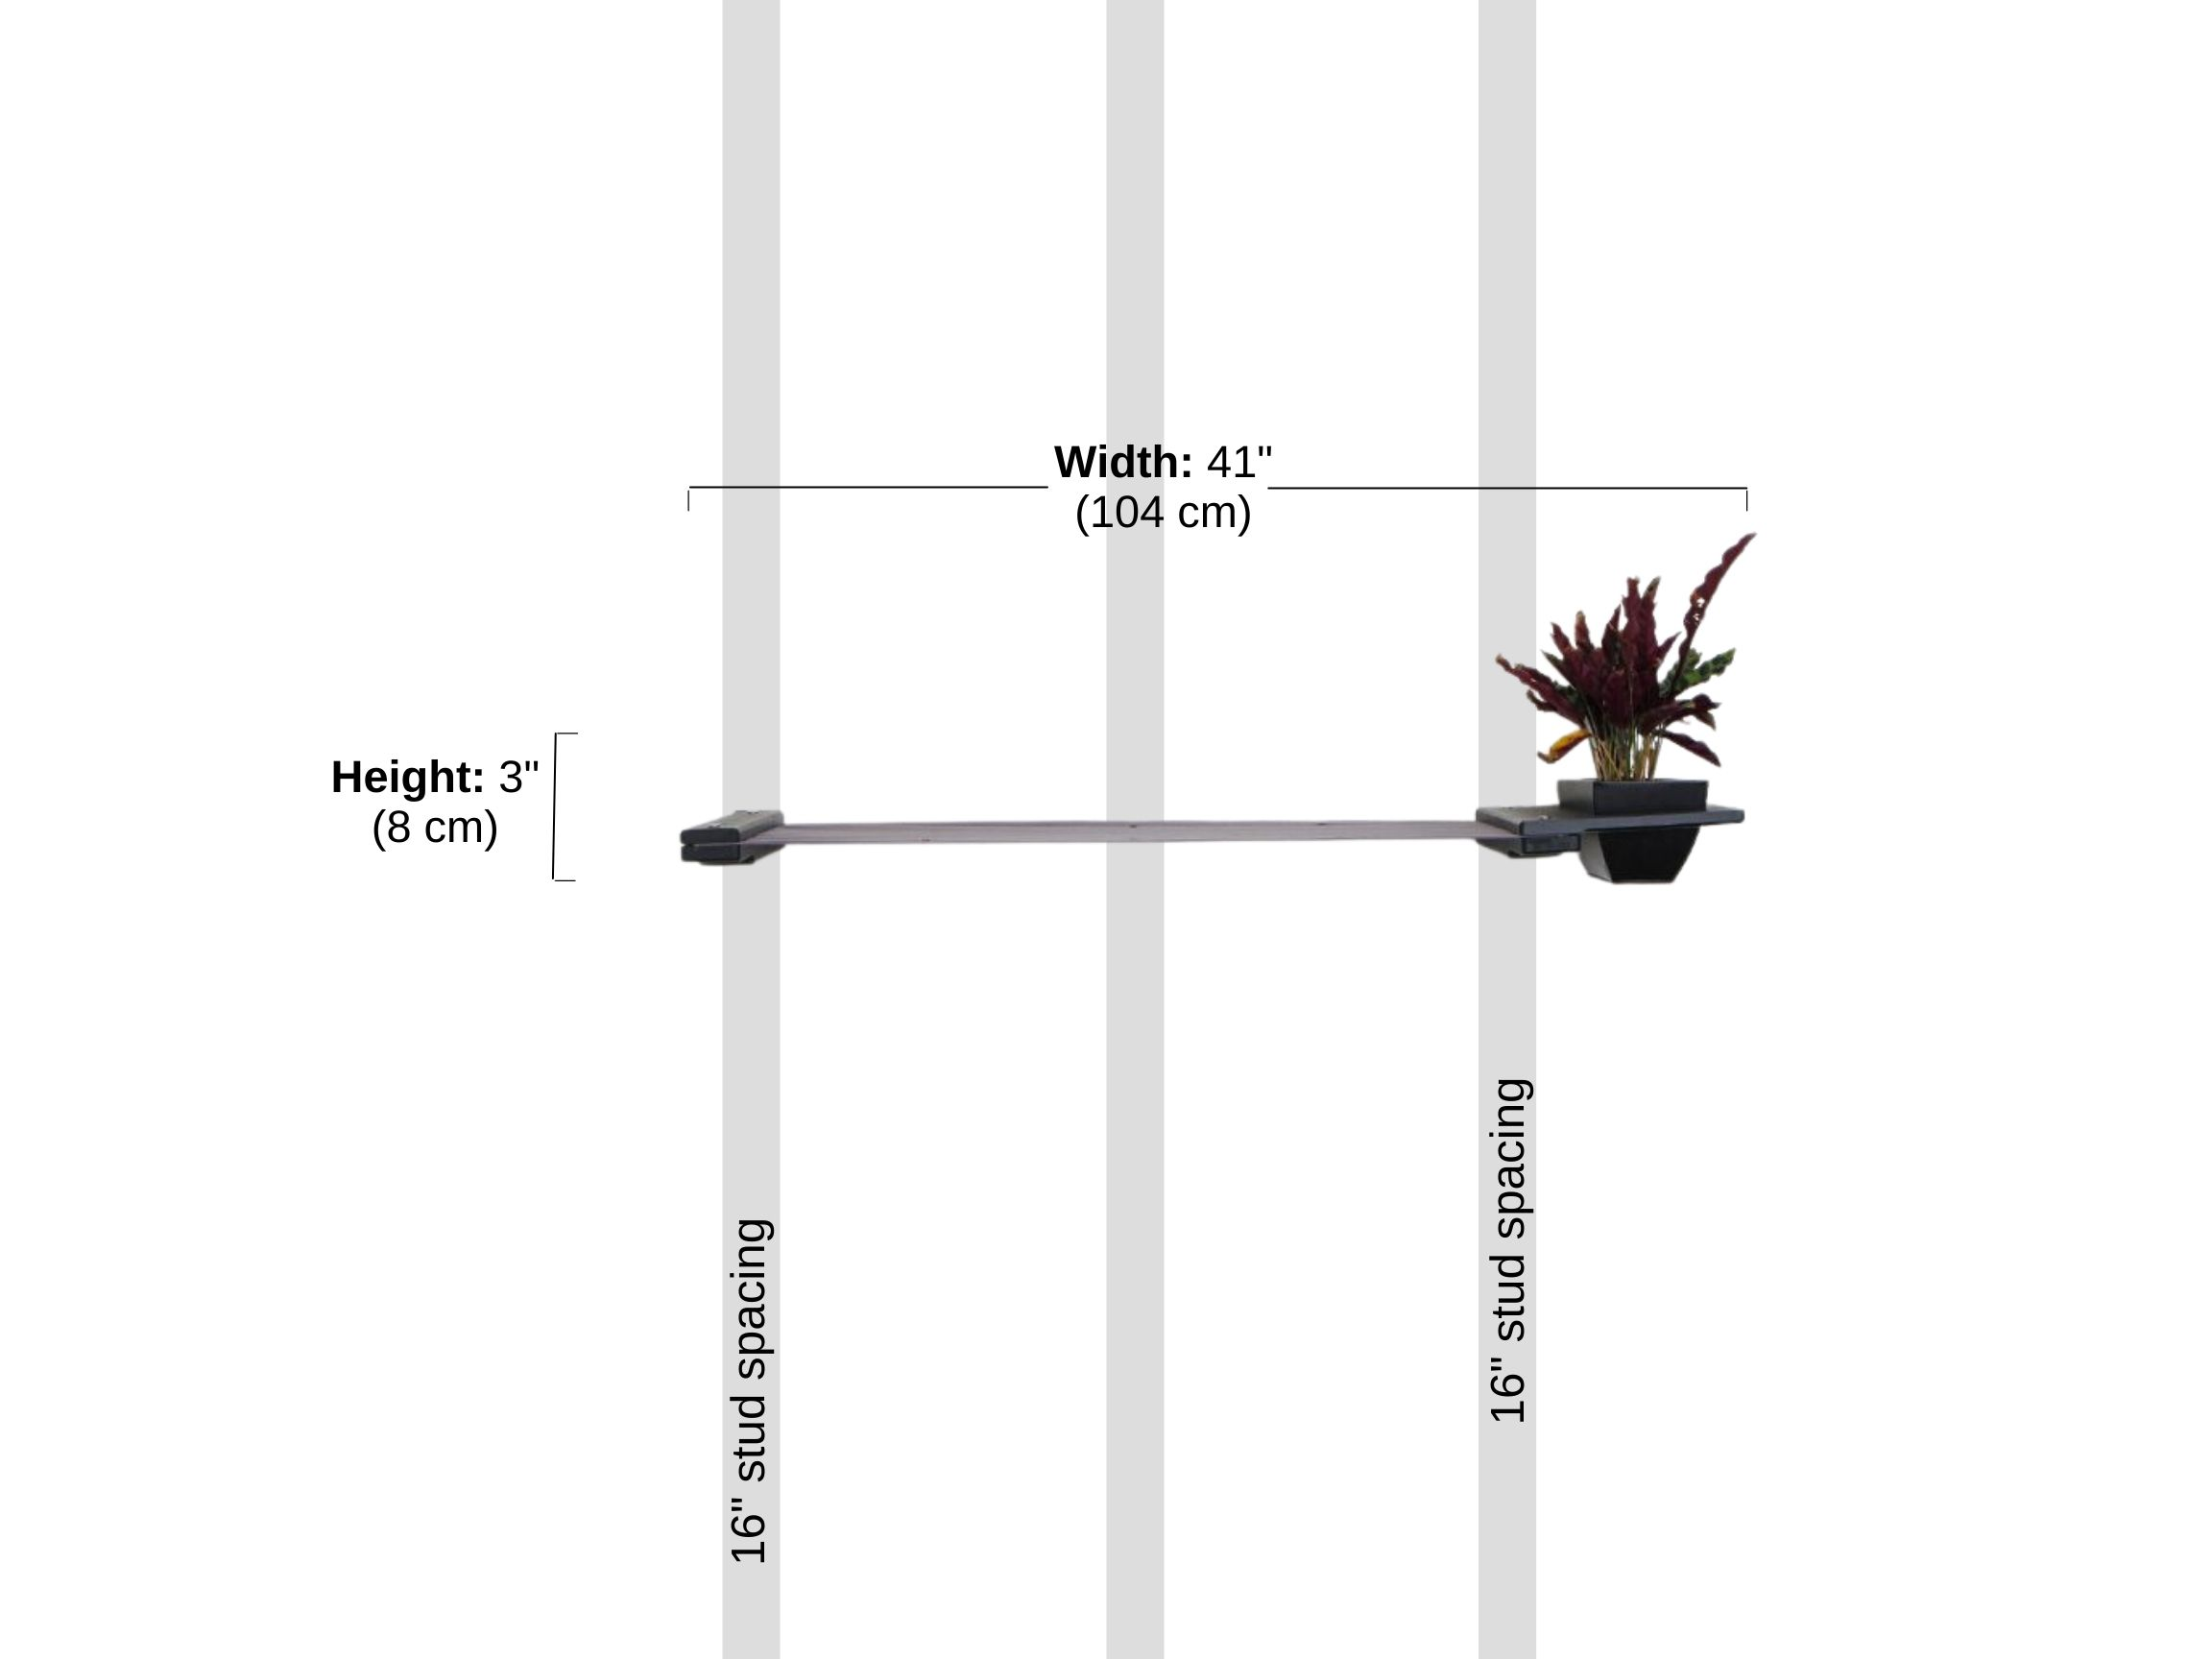 stud spacing and dimensions of feeder lounge